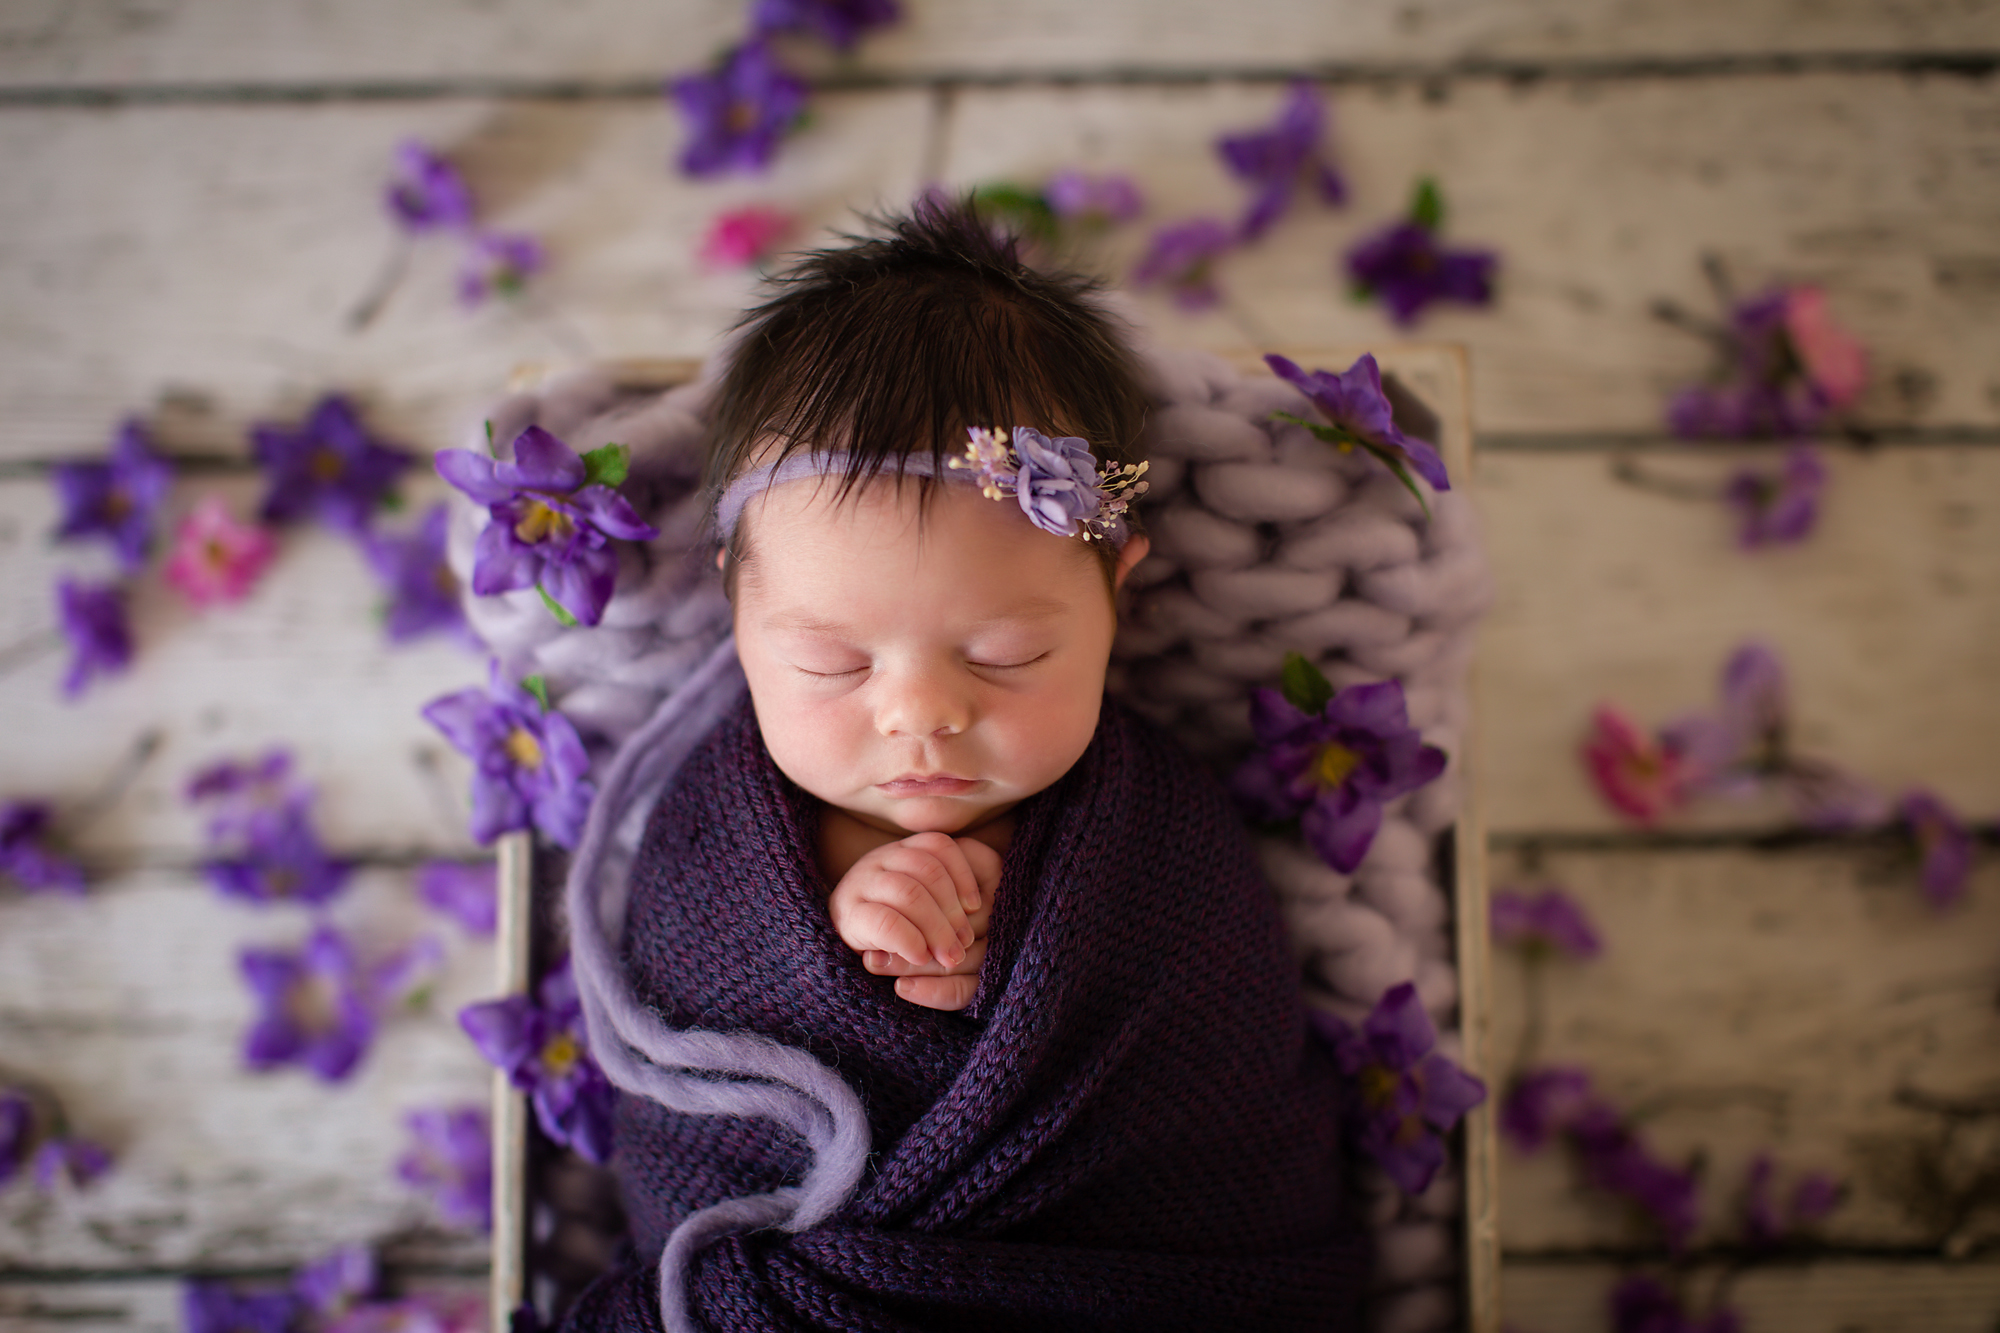 Newborn baby girl photoshoot idea. Baby girl is posed in the crate, wrapped in purple wrap and surrounded by purple flowers.